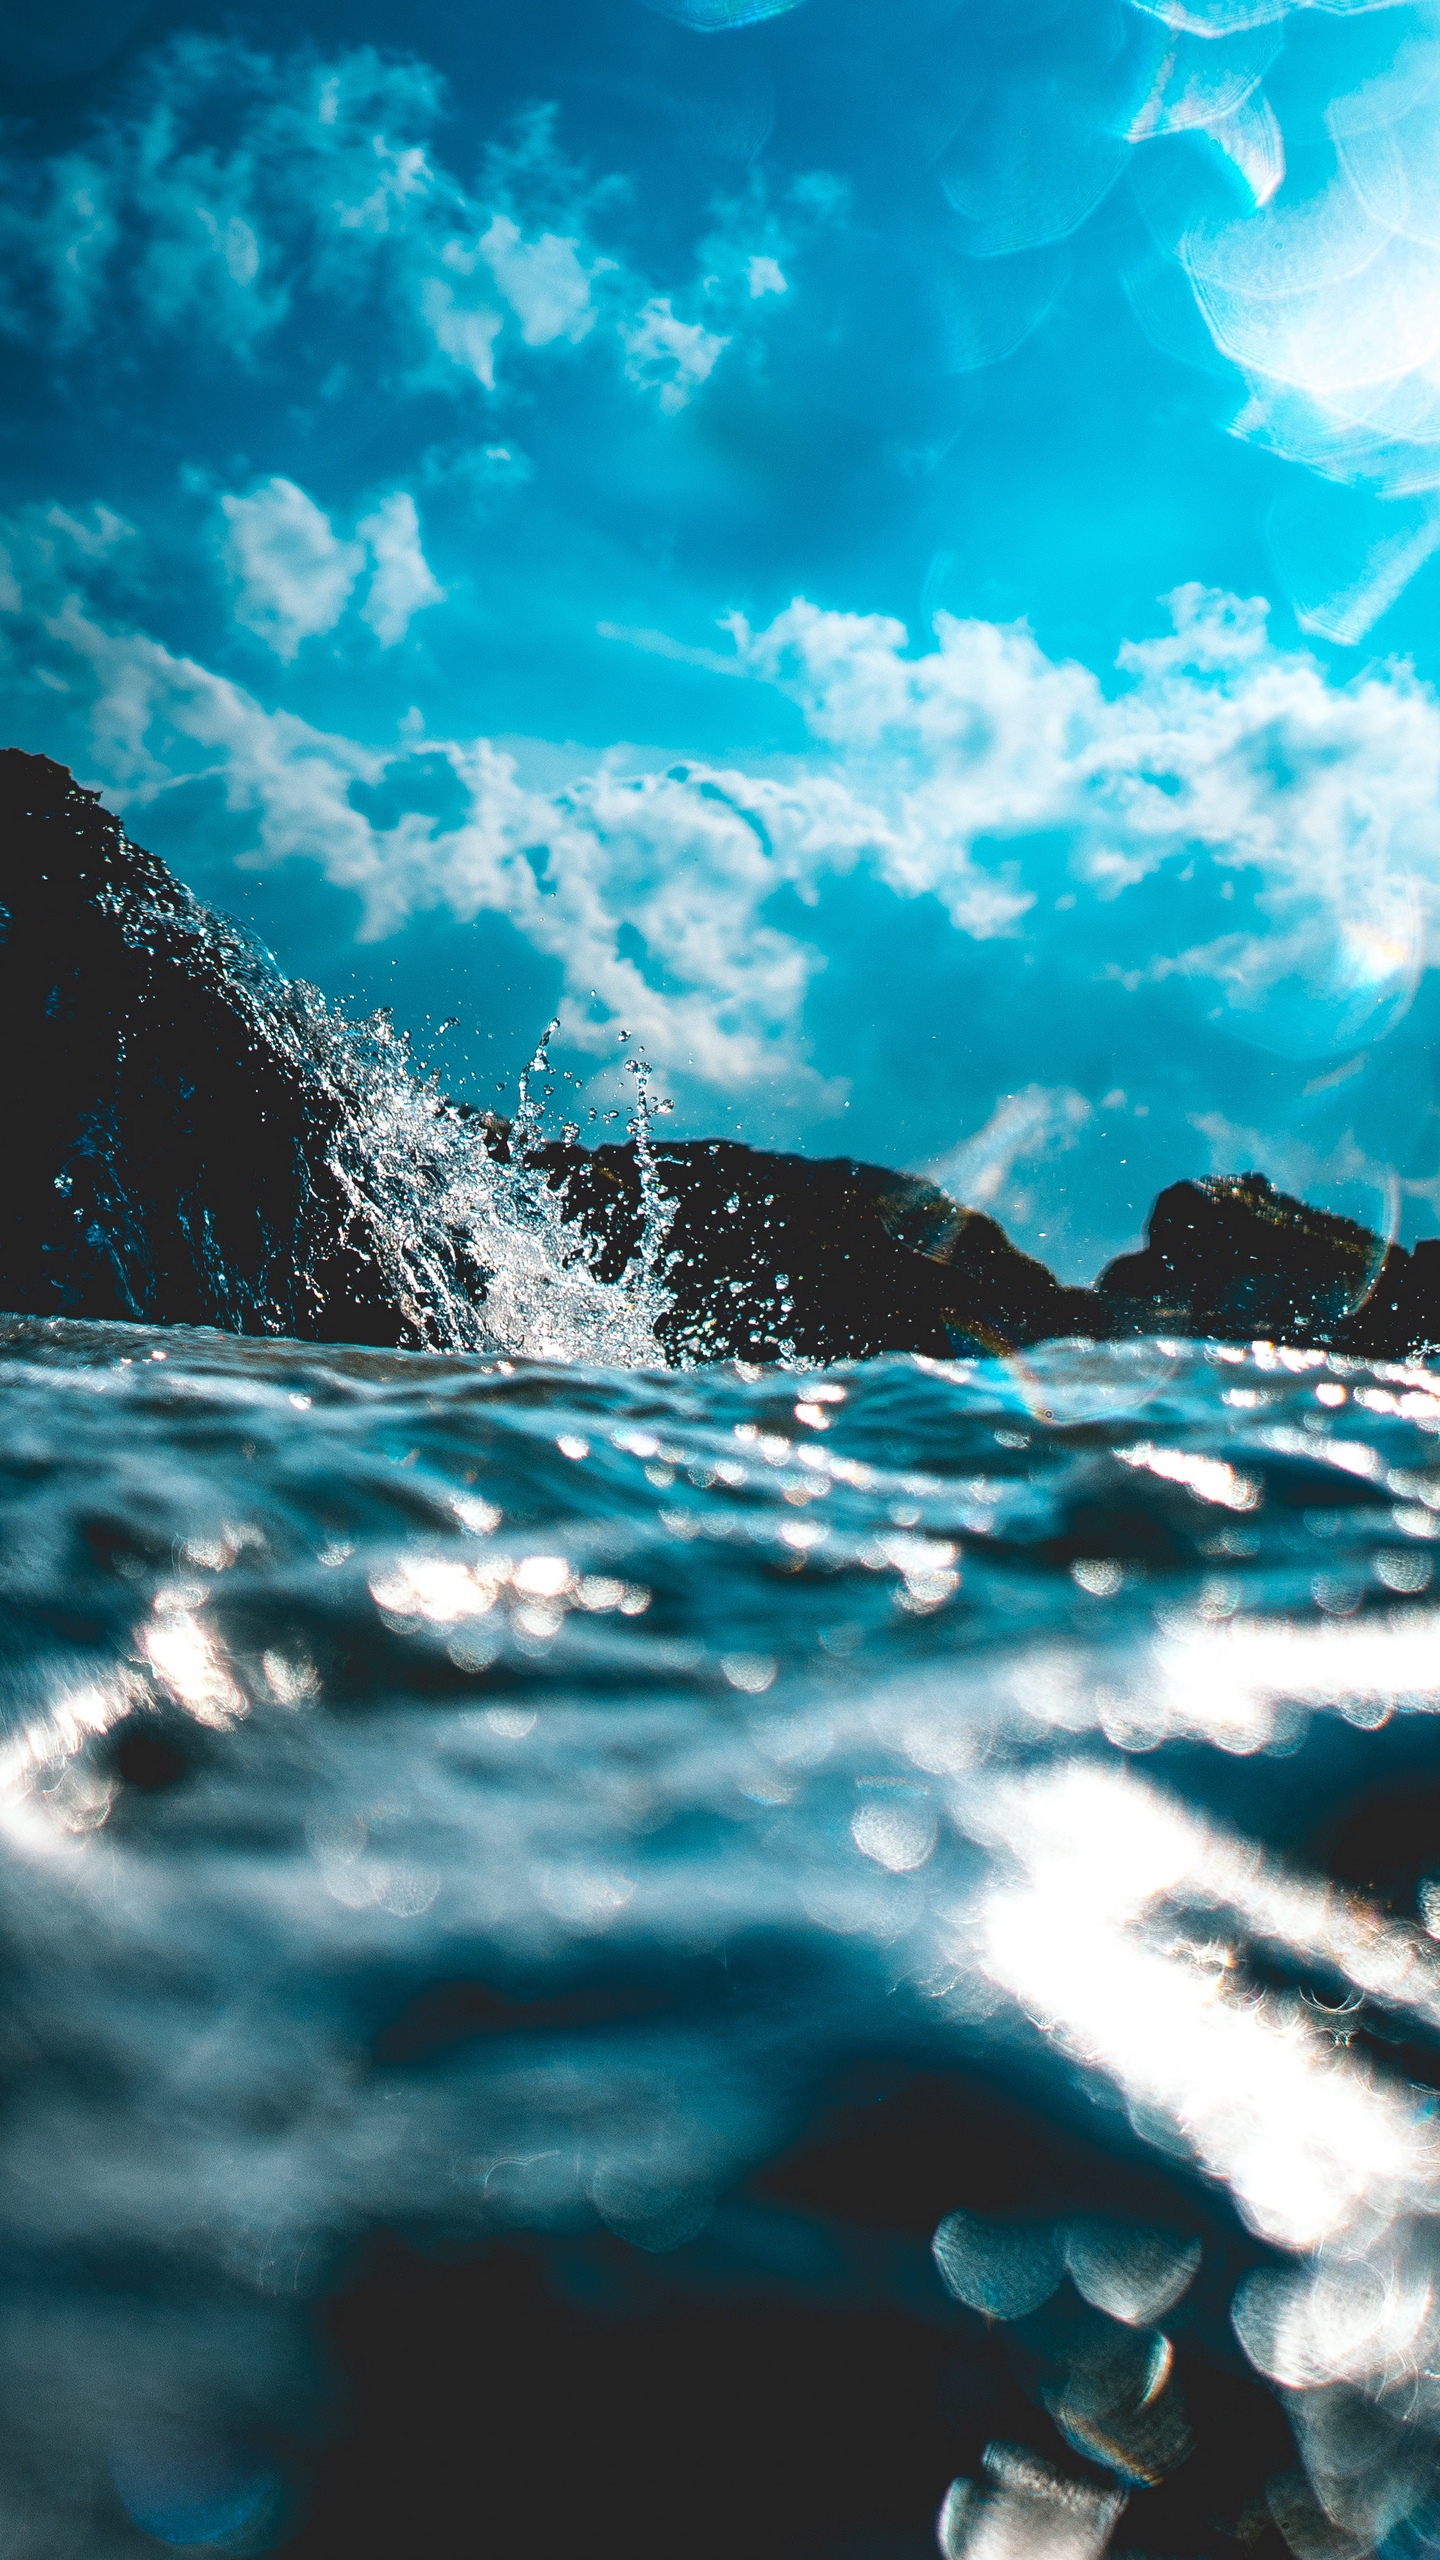 Wallpaper Water, Spray, Glare, Blur, Waves, Sky - Wave Background Iphone , HD Wallpaper & Backgrounds